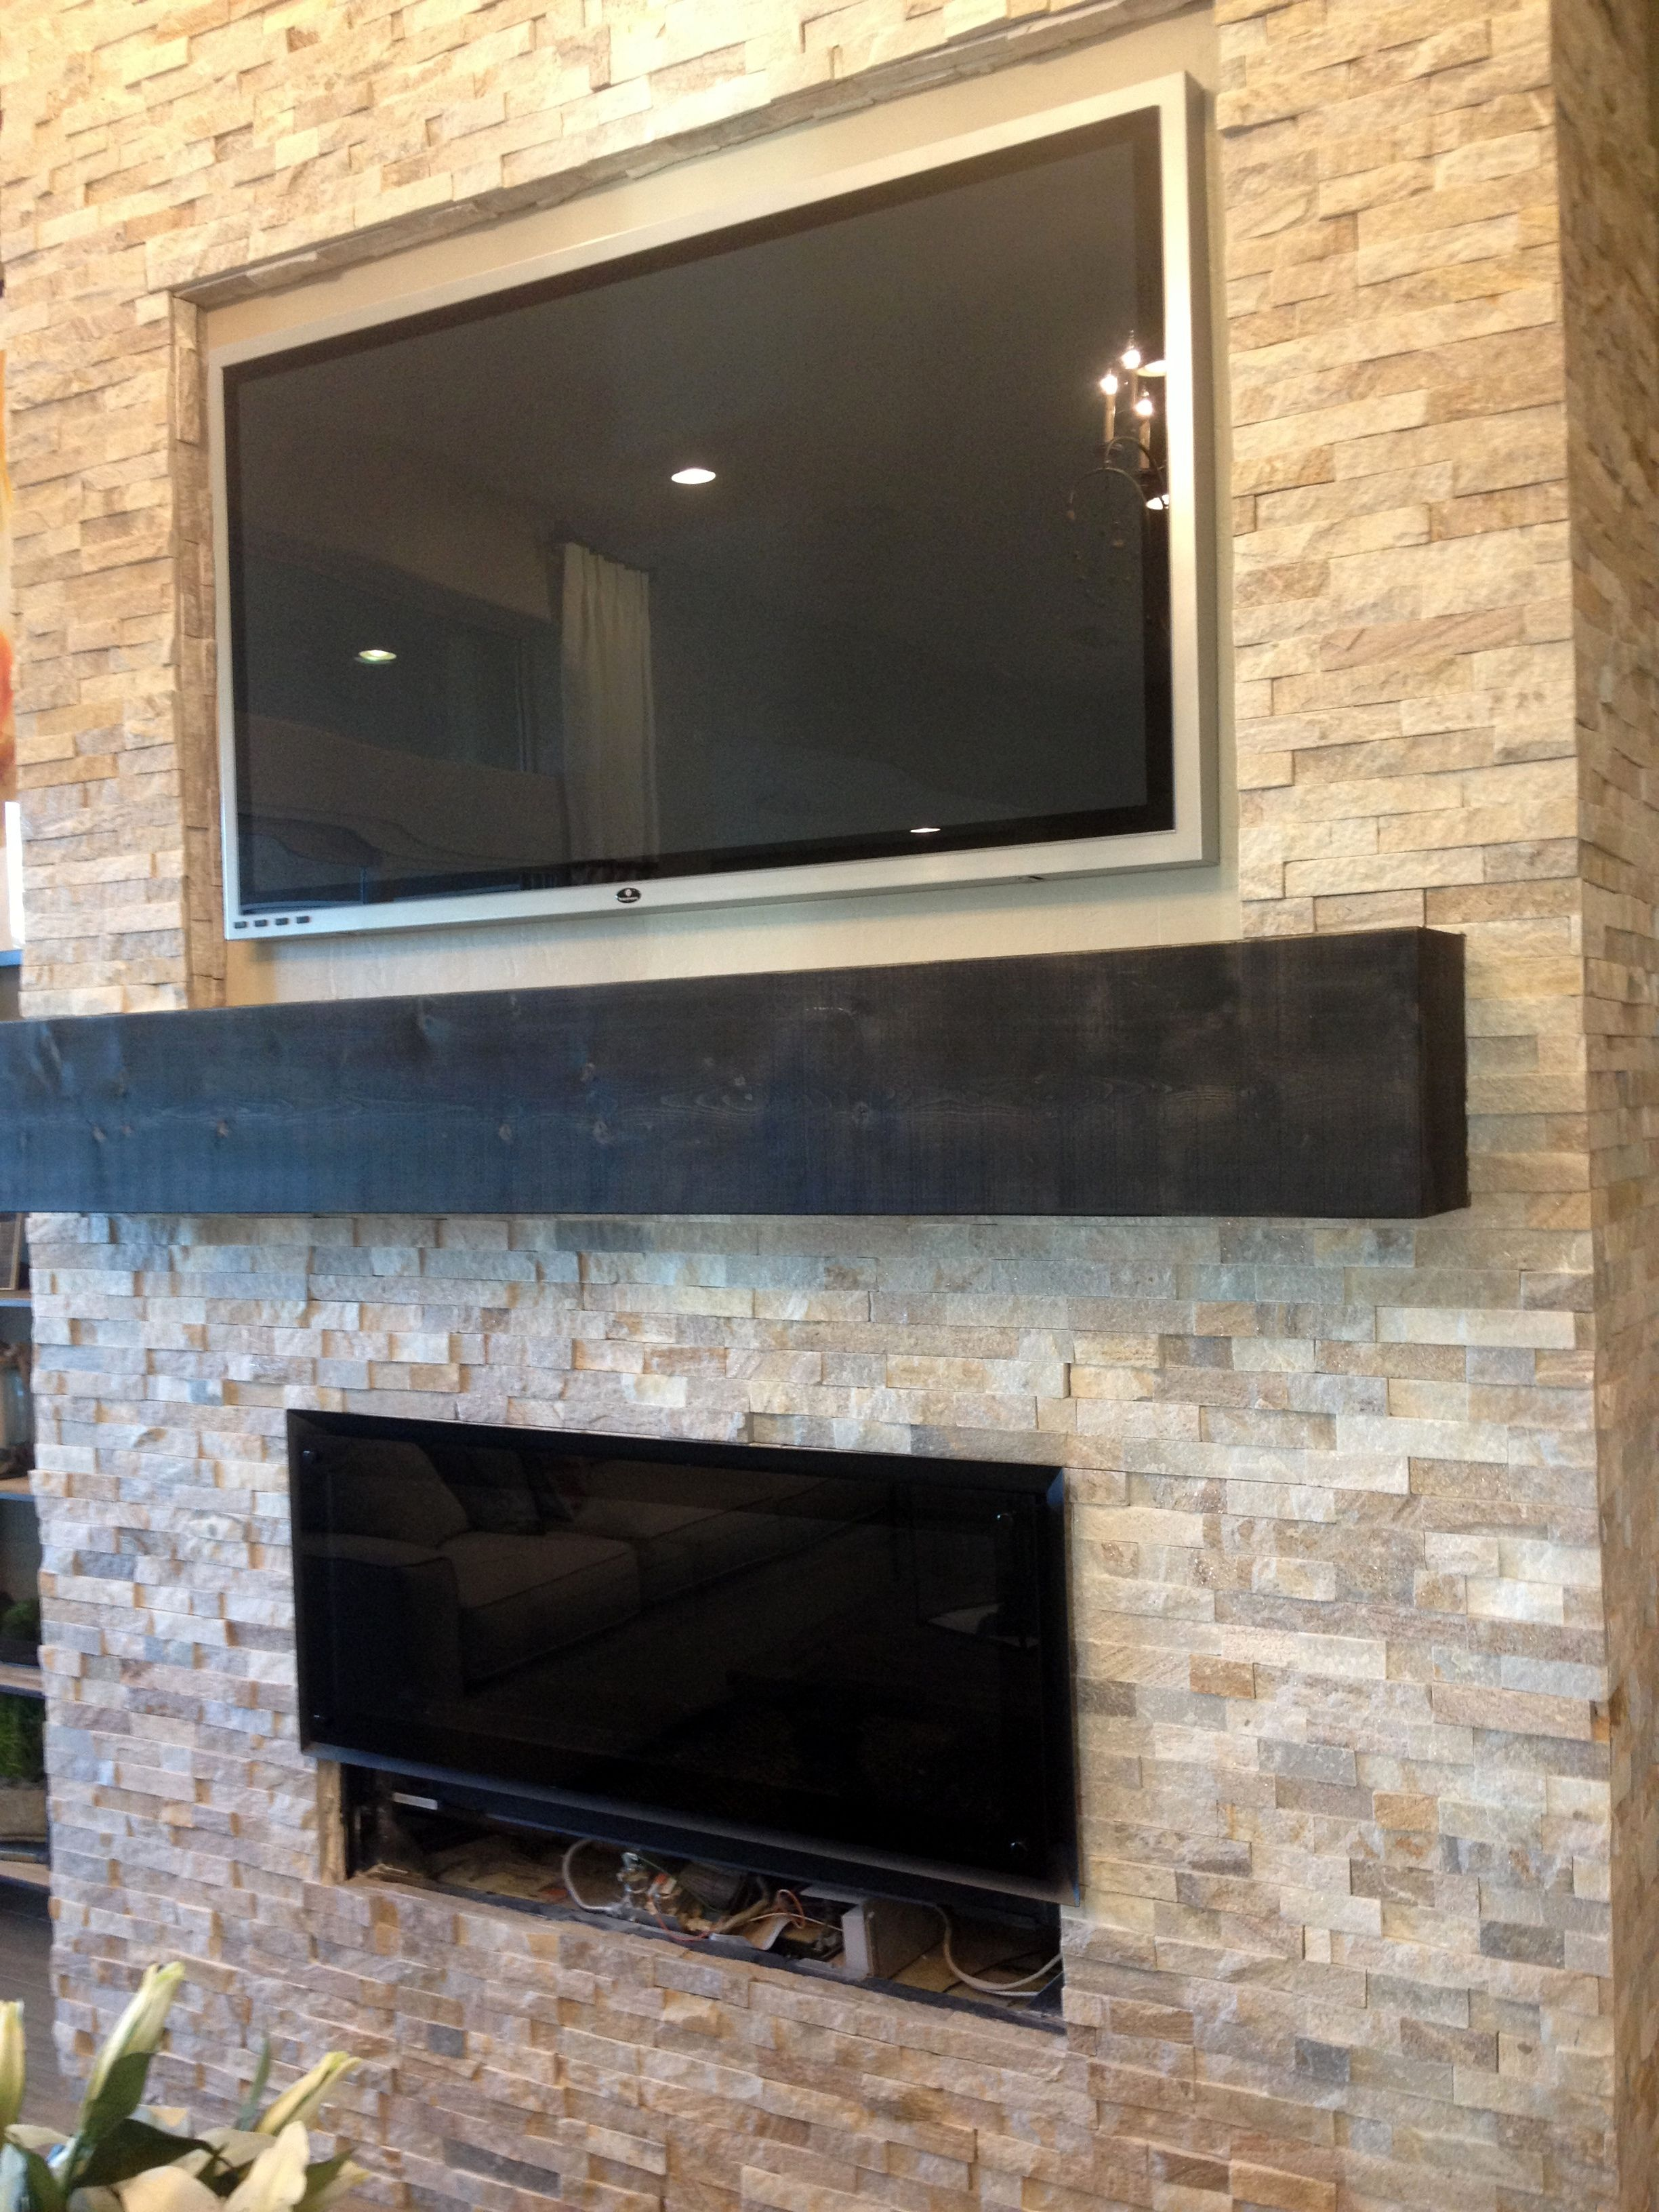 A Quartz Rock Entertainment Fireplace Wall